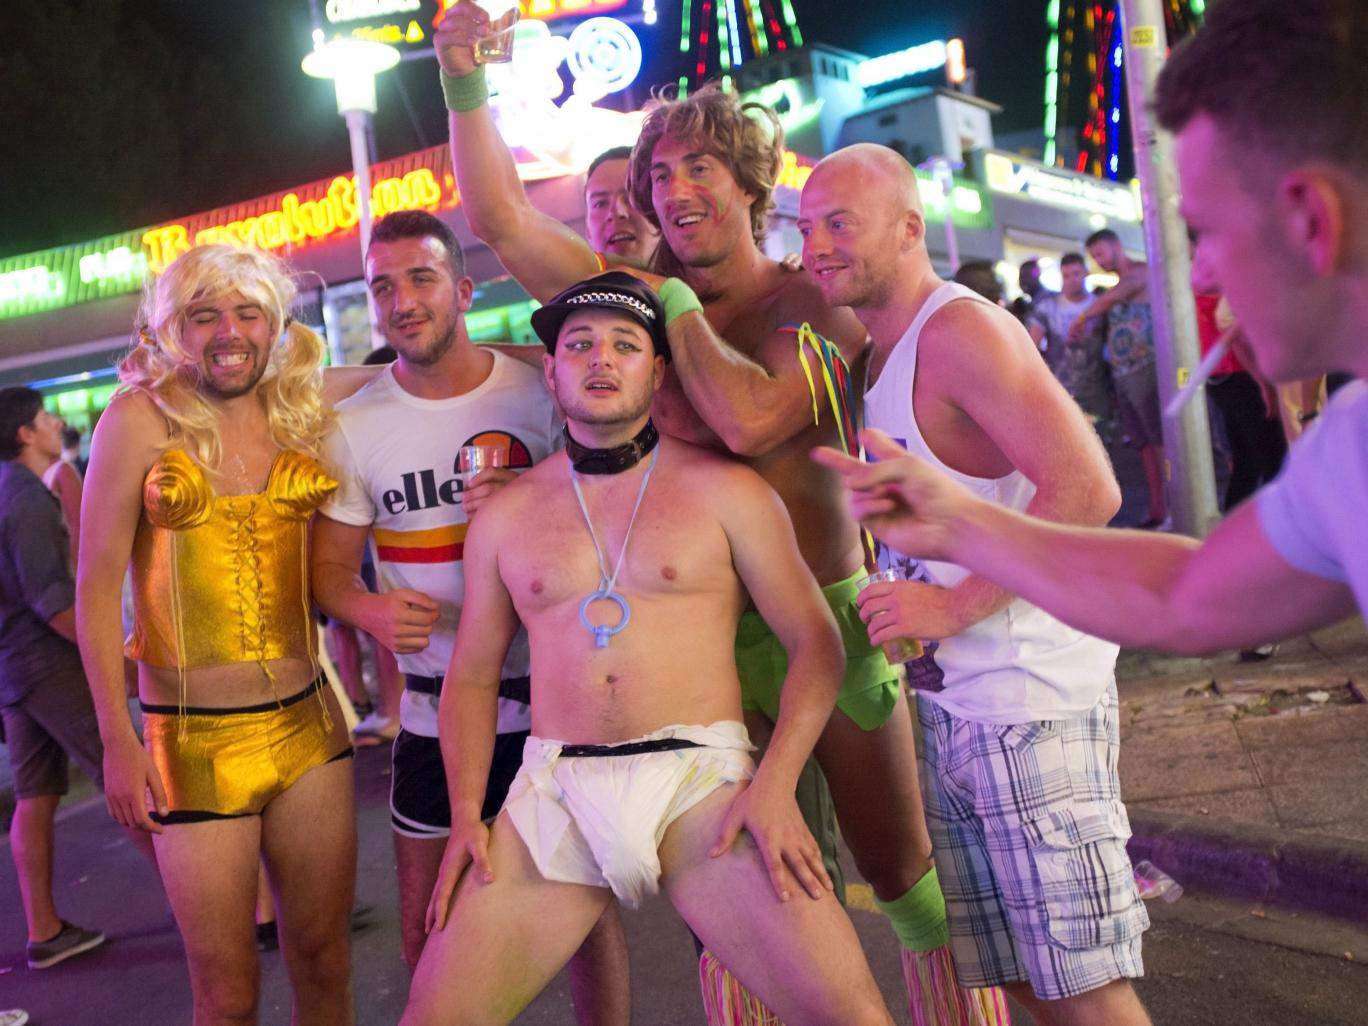 Brits Caught In X Rated Magaluf Paint Party Magaluf 11